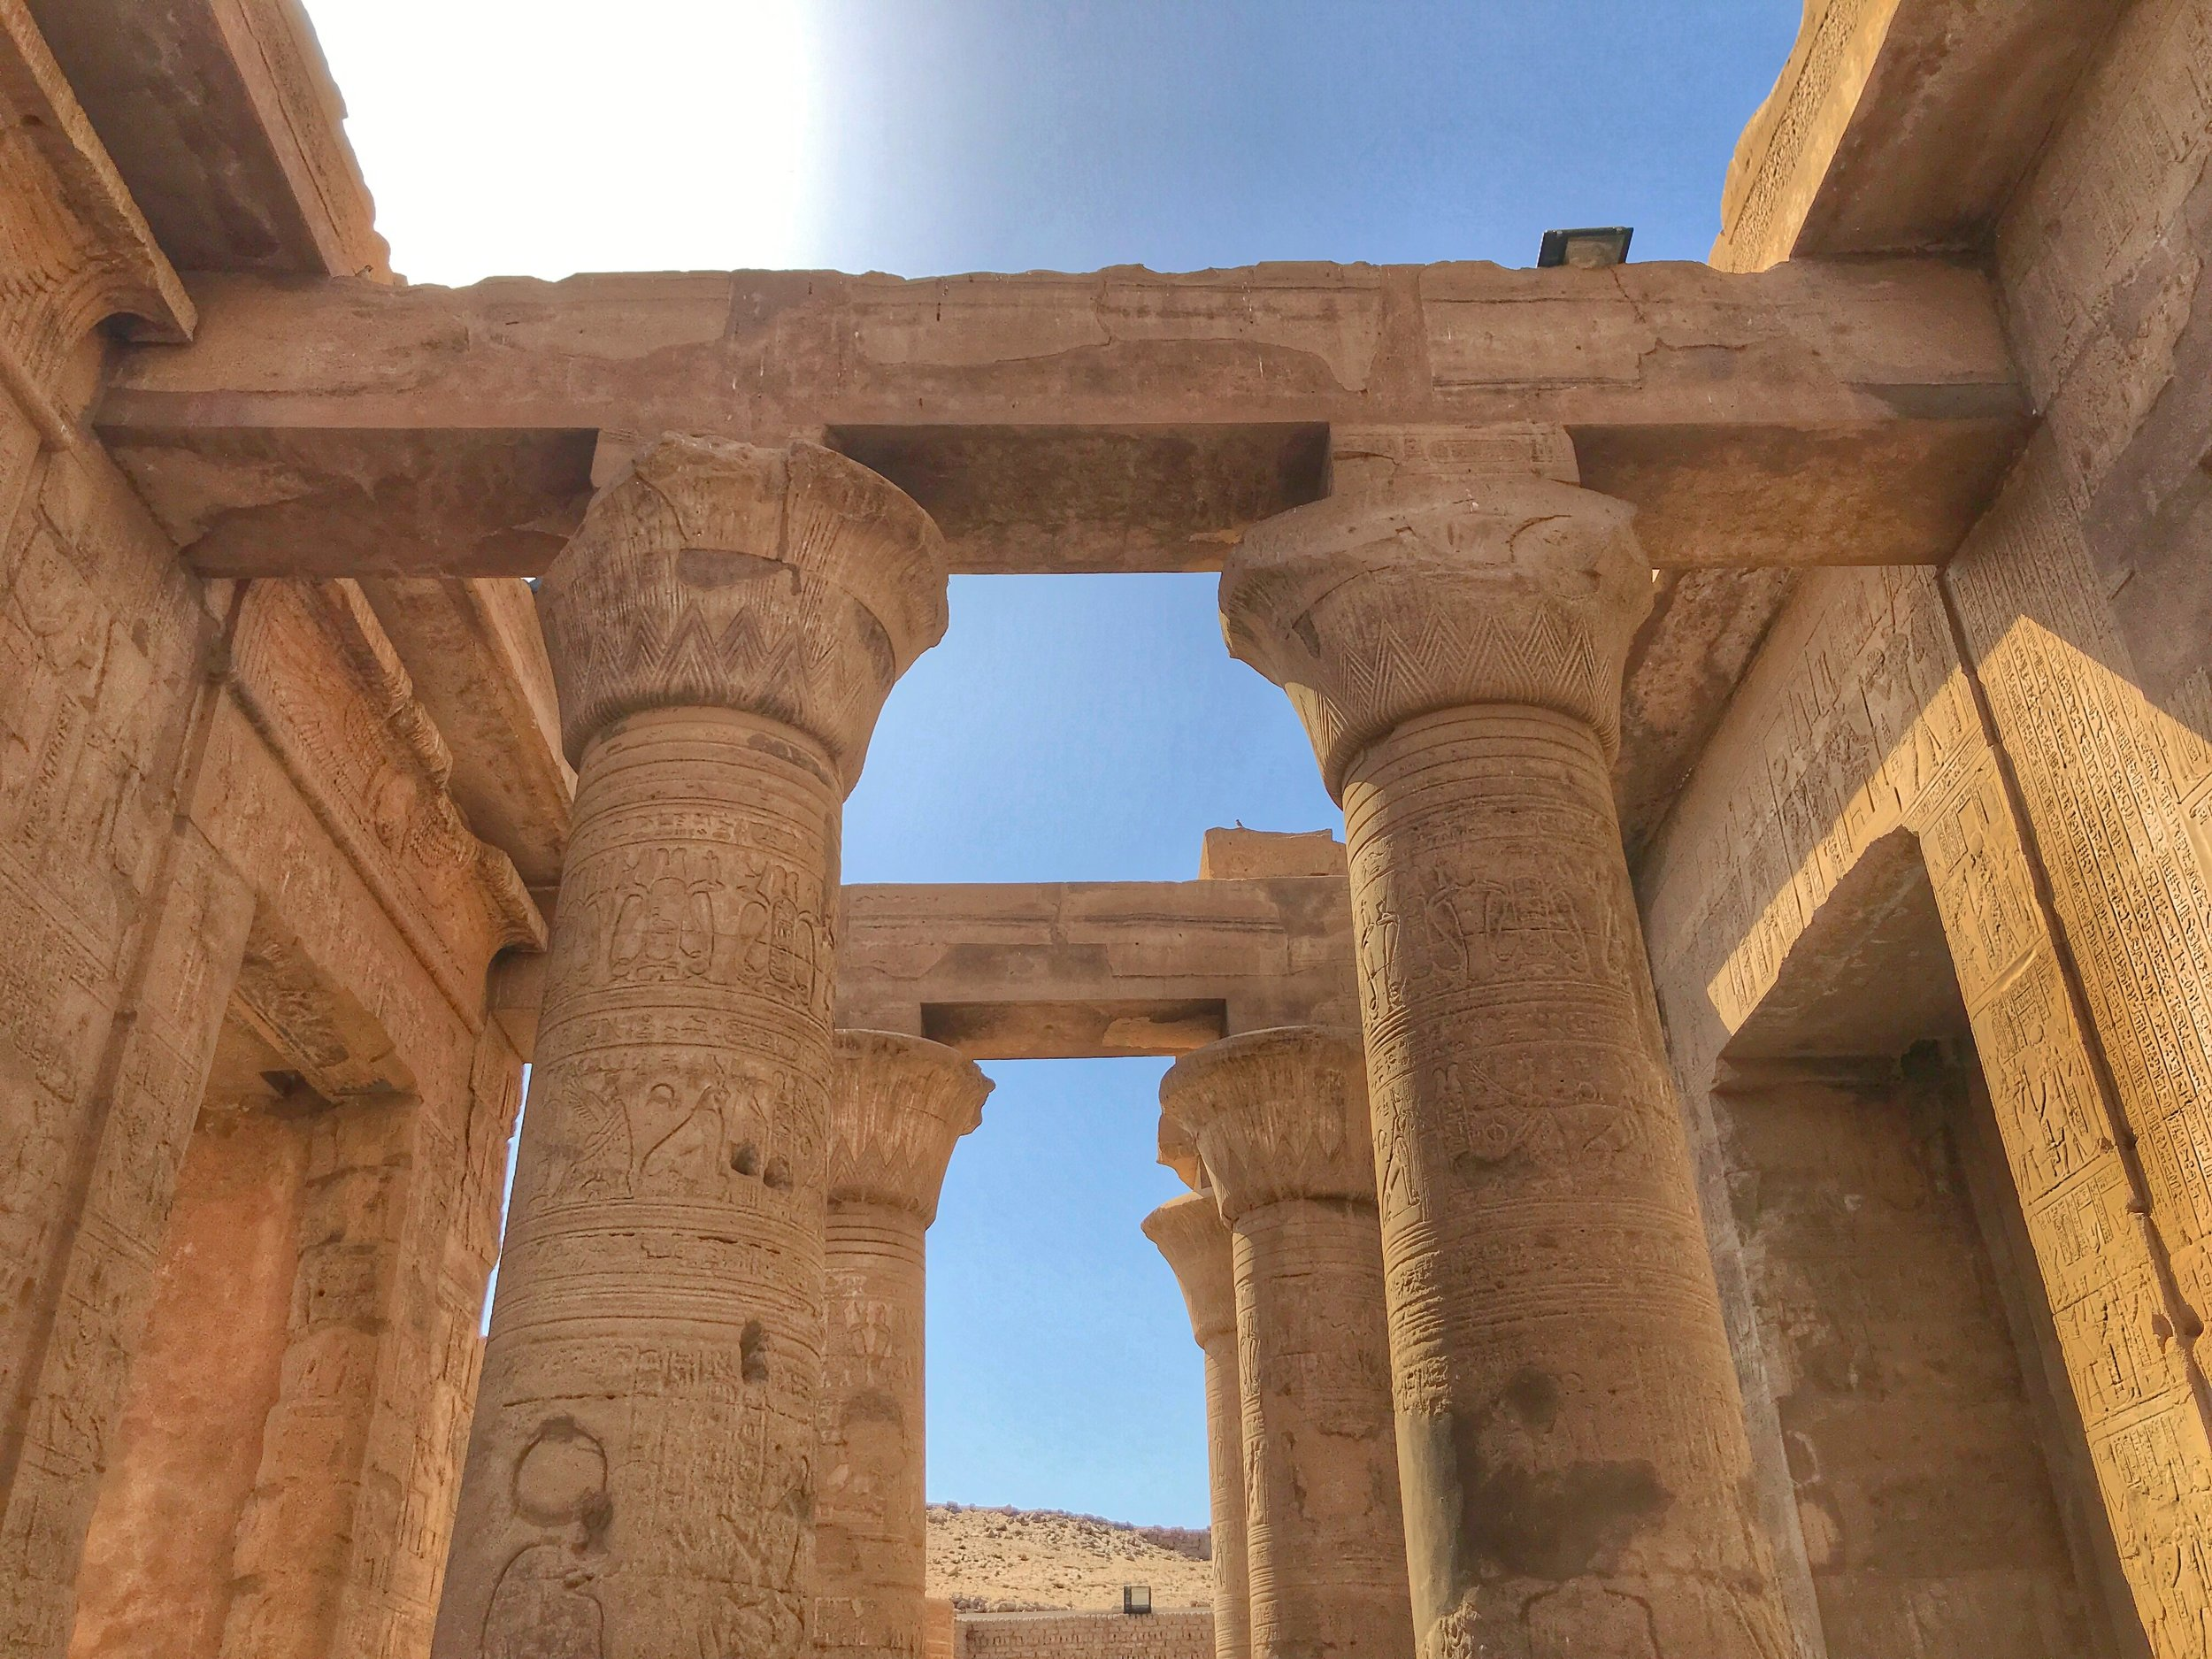 Kom Ombo's distinctive floral flourishes at the top of the columns are what first appealed to Wally